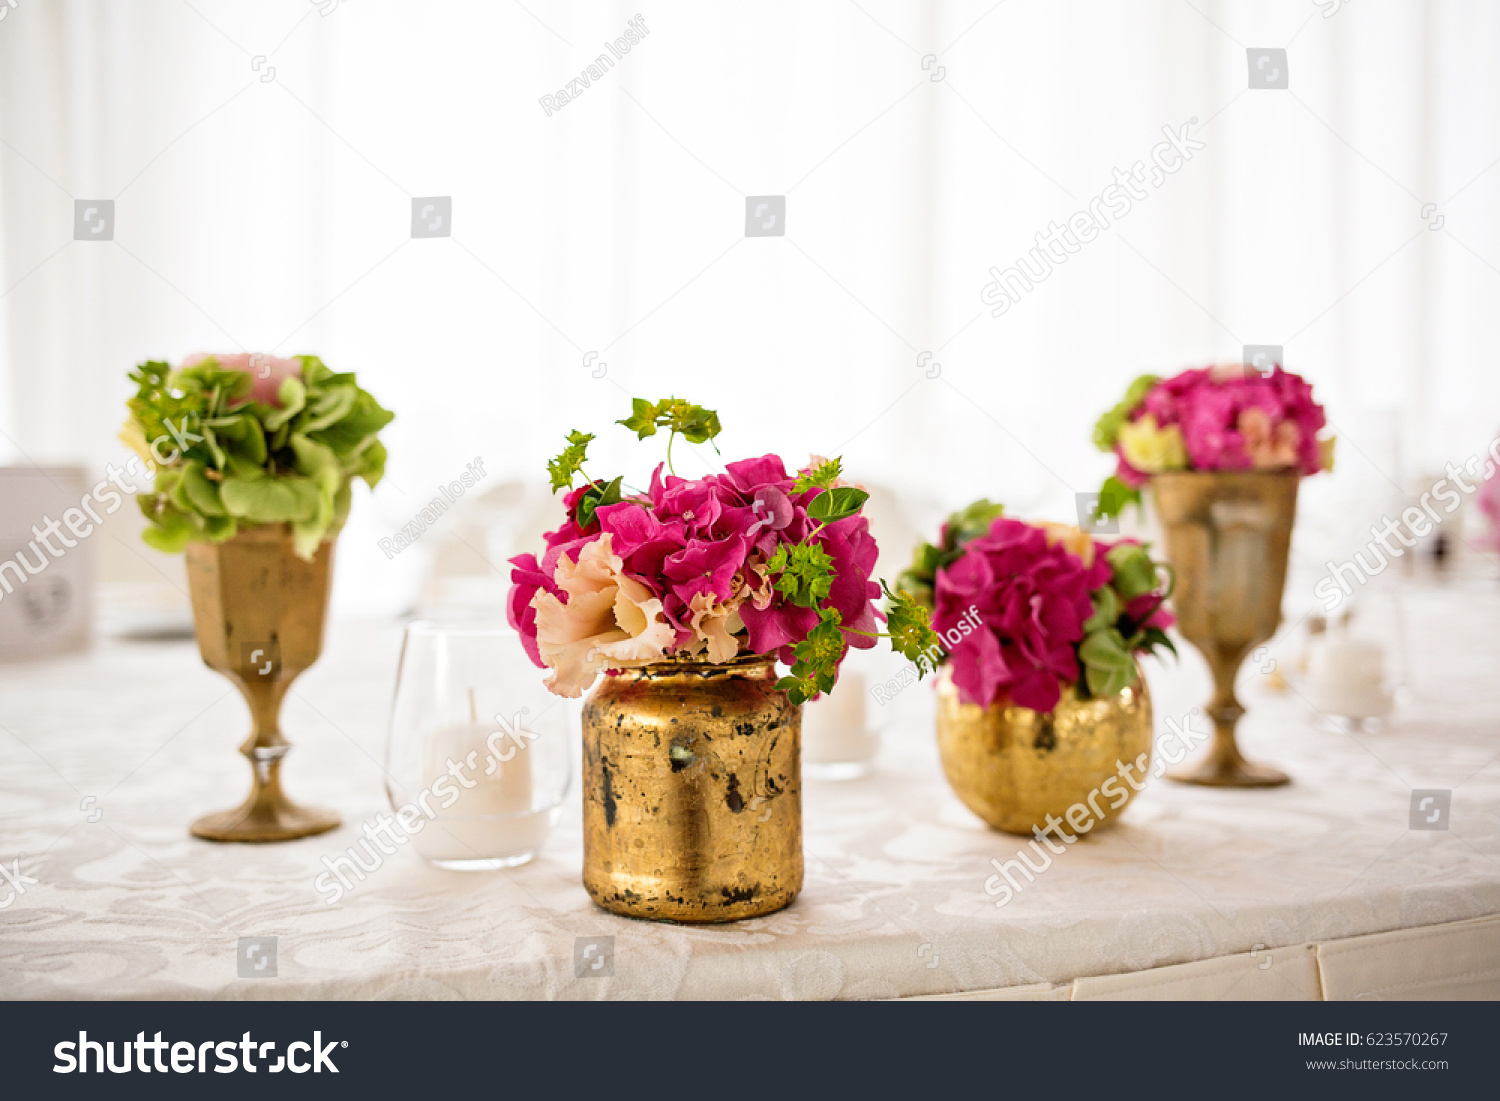 Beautiful flower bouquets elegant bronze gold stock photo beautiful flower bouquets in elegant bronze and gold vases flower arrangements in different style vases reviewsmspy